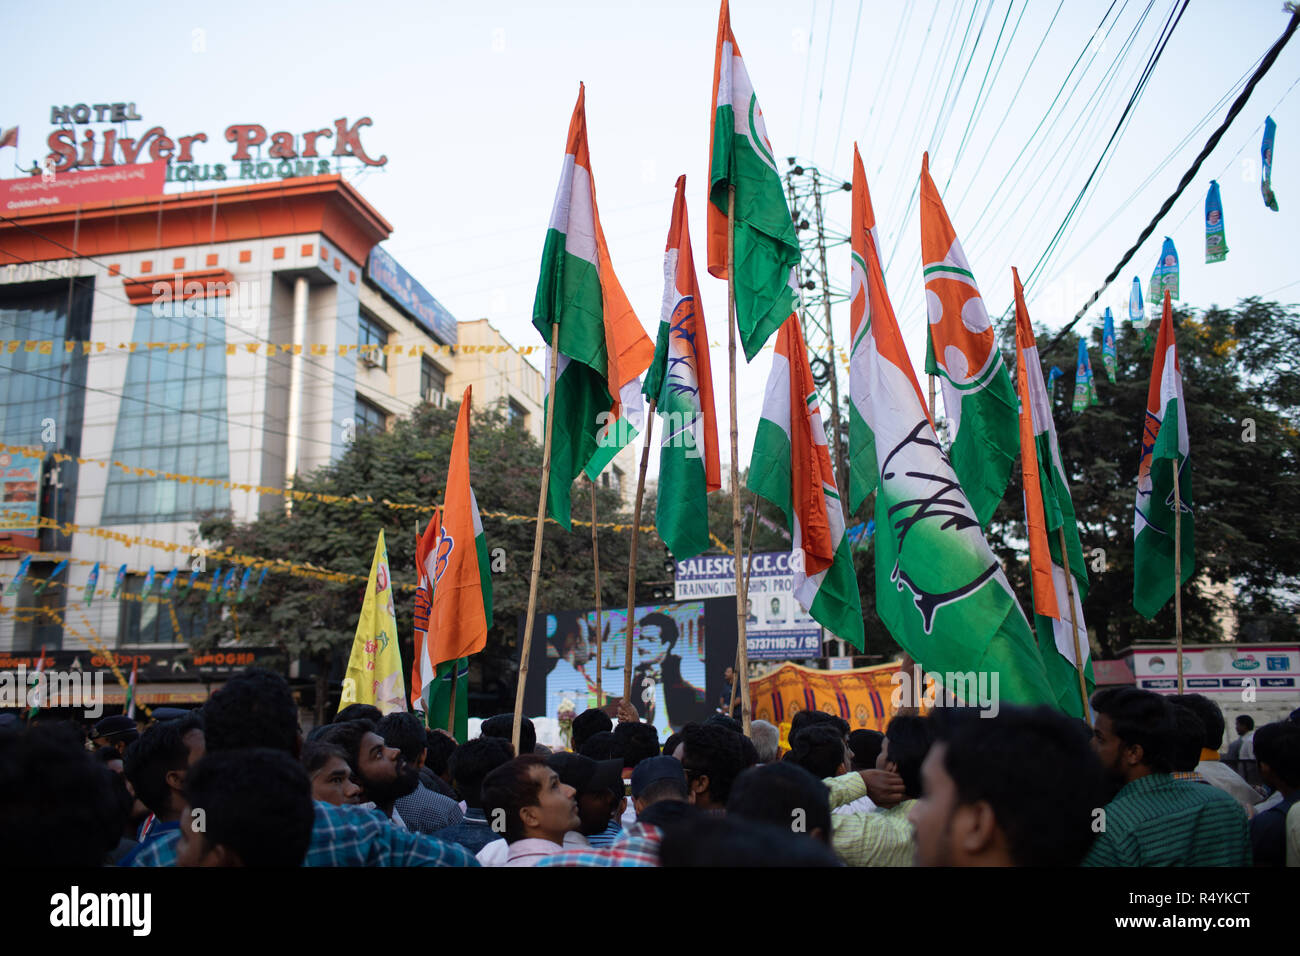 Hyderabad,India.28th November,2018. Supporters of Indian National Congress hold party flag during a road show of Andhra Pradesh Chief Minister N Chandrababu Naidu and Congress President Rahul Gandhi in Hyderabad,India for the forthcoming Telangana Legislative Assembly elections to be held on 07 December,2018.Credit: Sanjay Borra/Alamy Live News - Stock Image